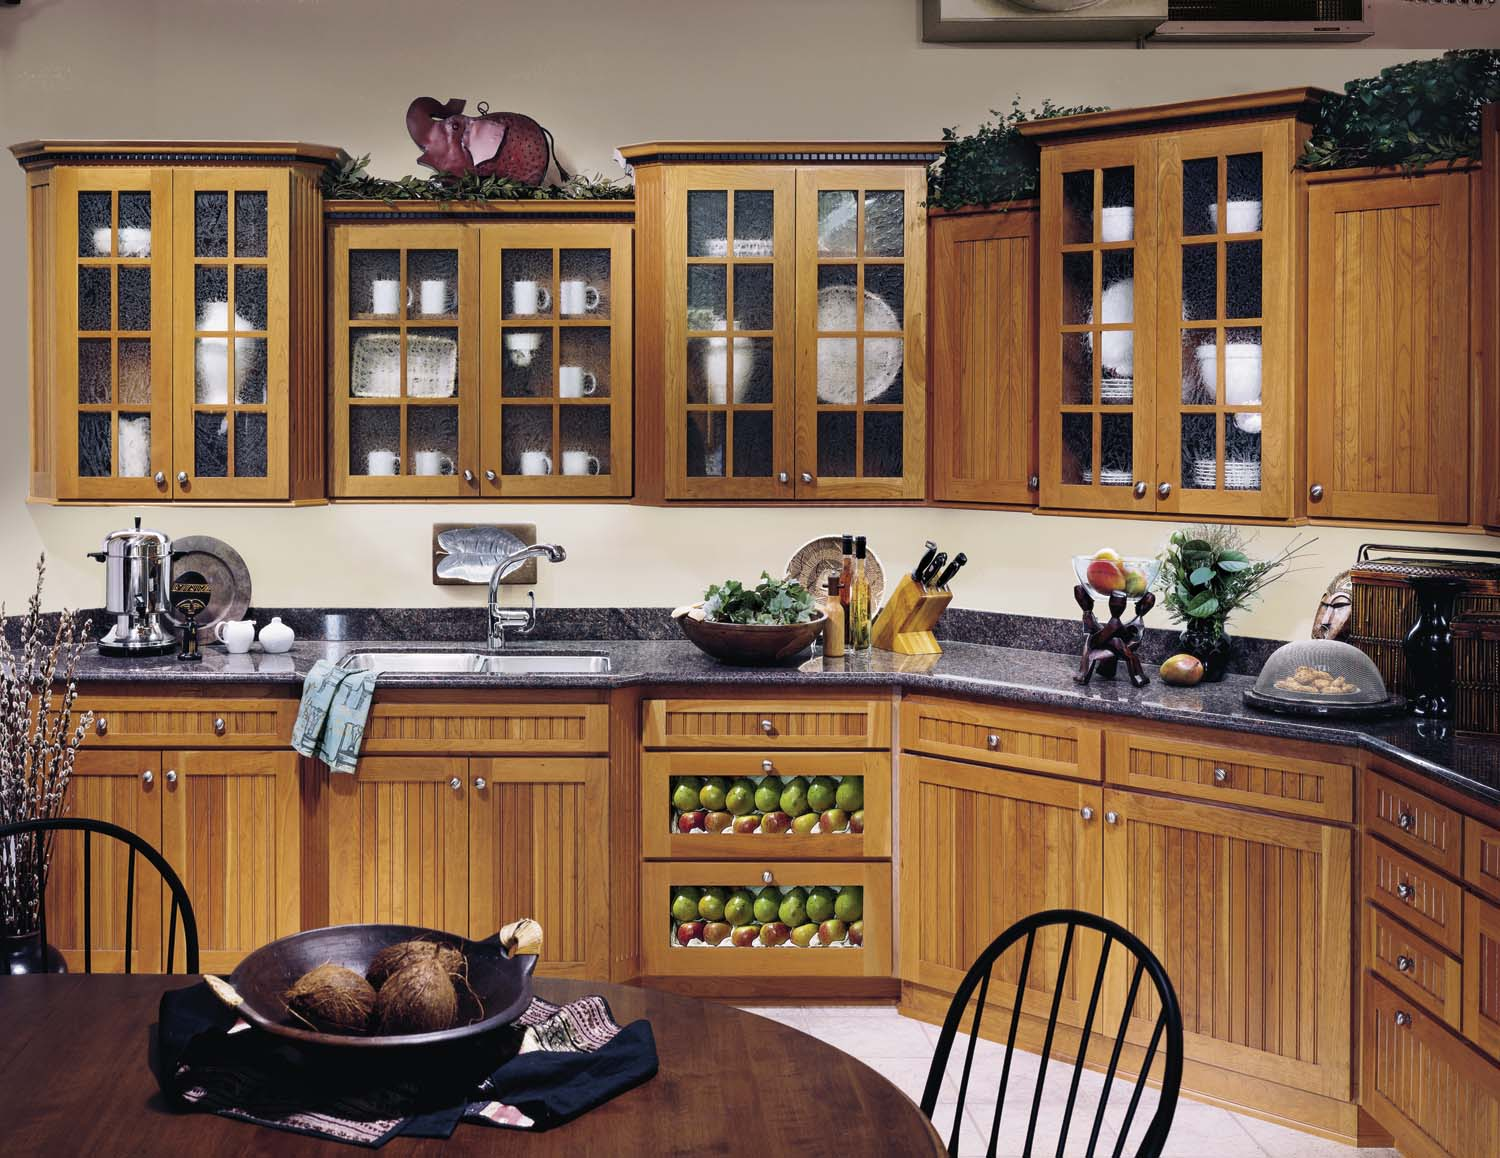 Kitchen cabinets organizers photo - 3